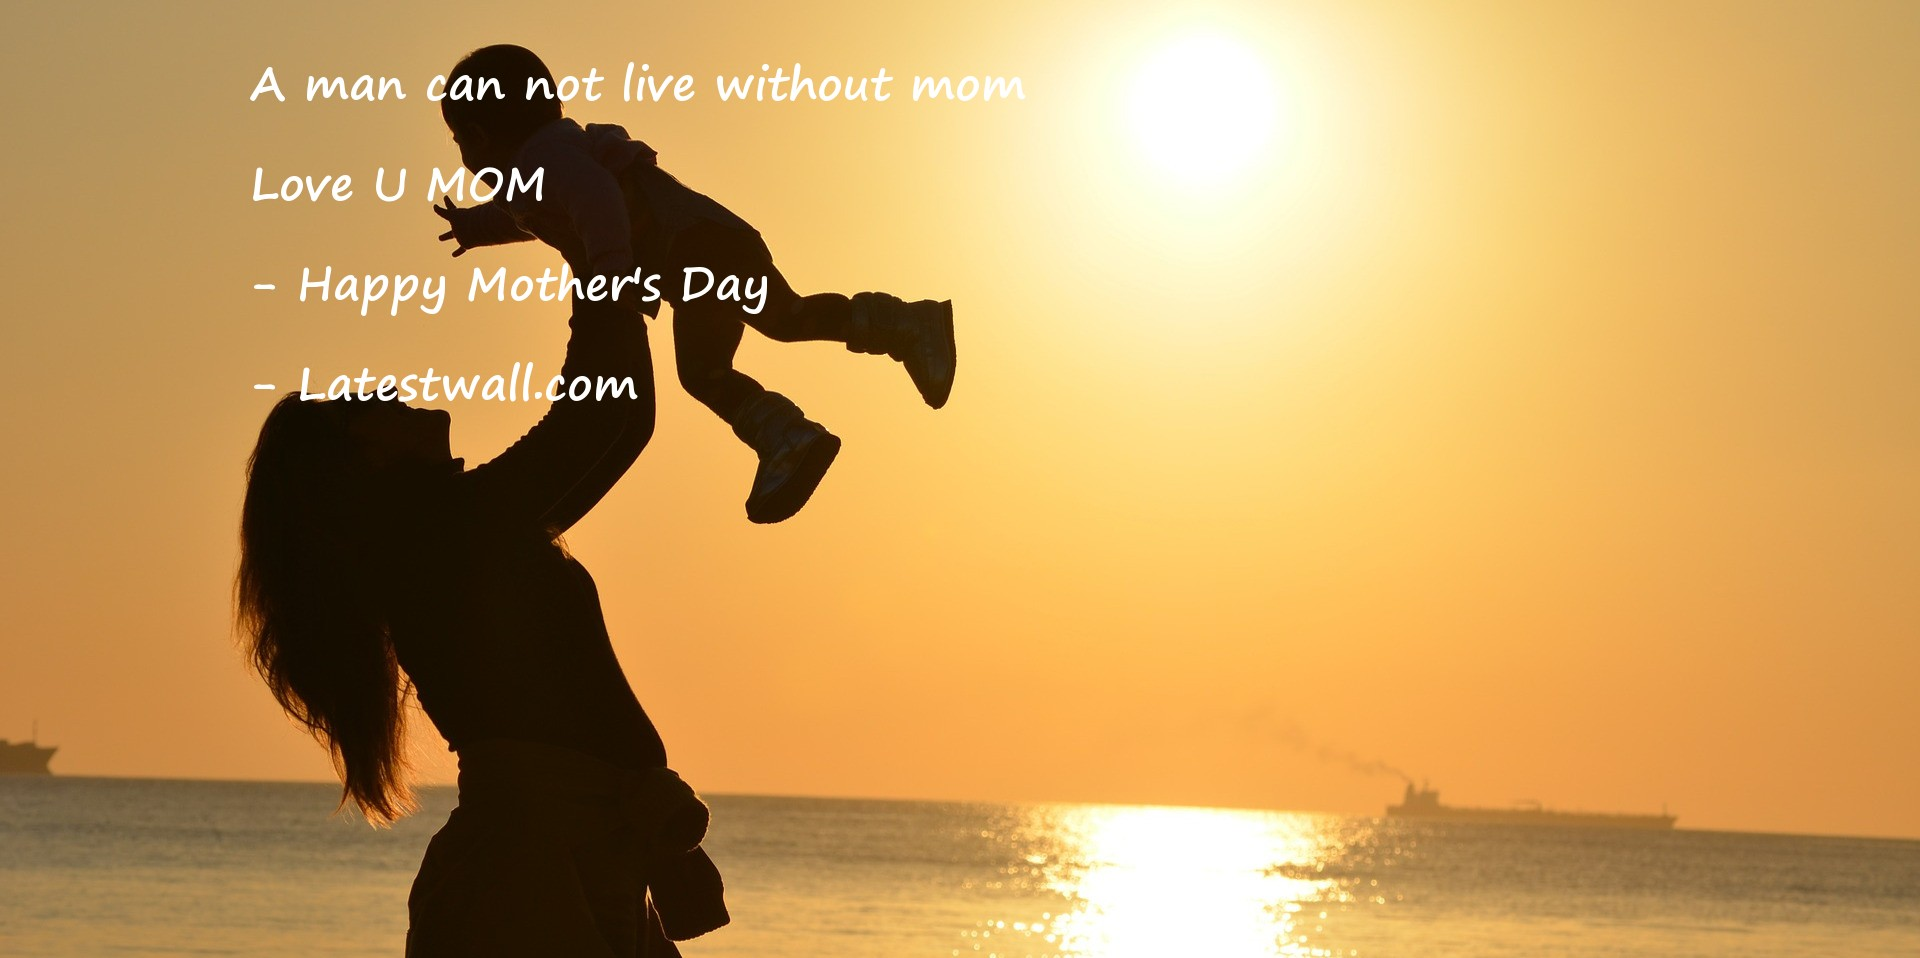 A man can not live without mom